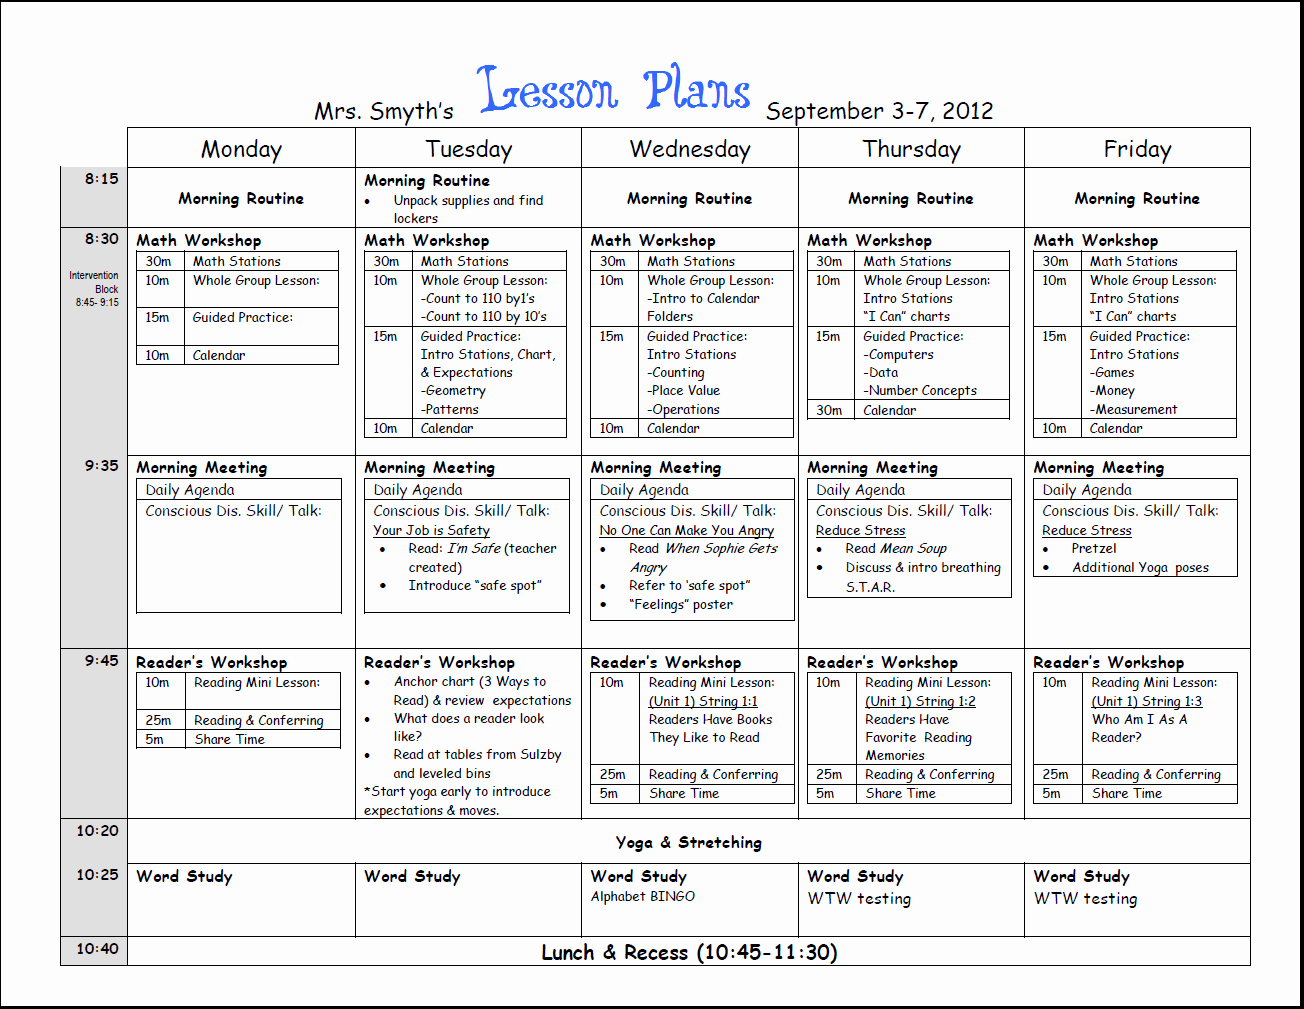 Teacher Day Plan Template Lovely Free Weekly Lesson Plan Template and Teacher Resources